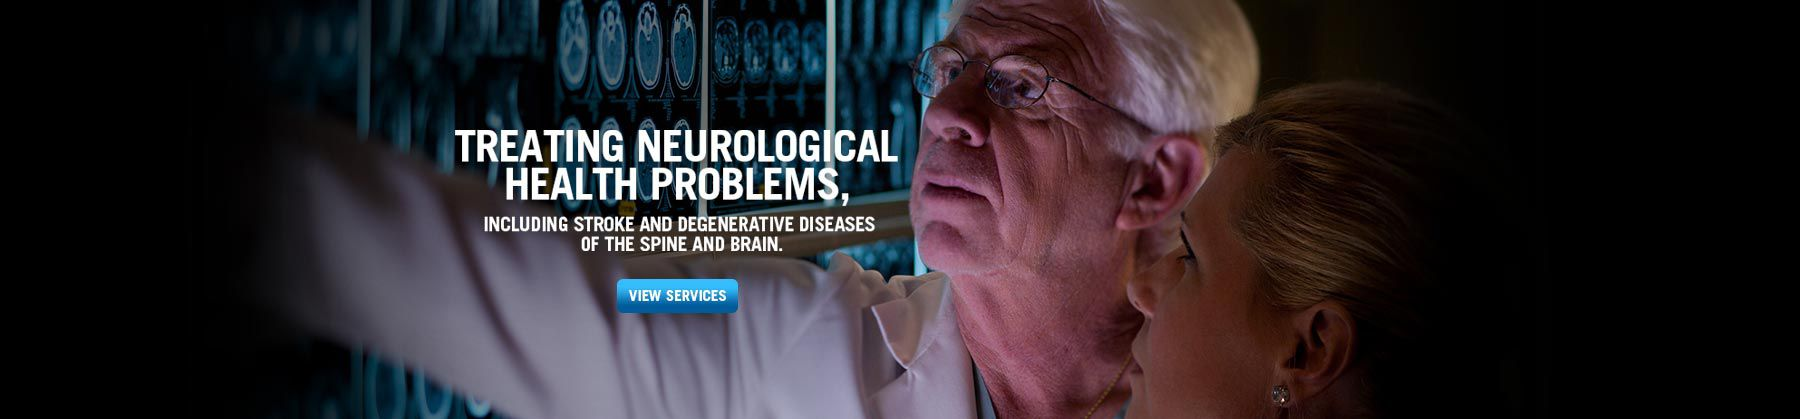 Treating Neurological Health Problems